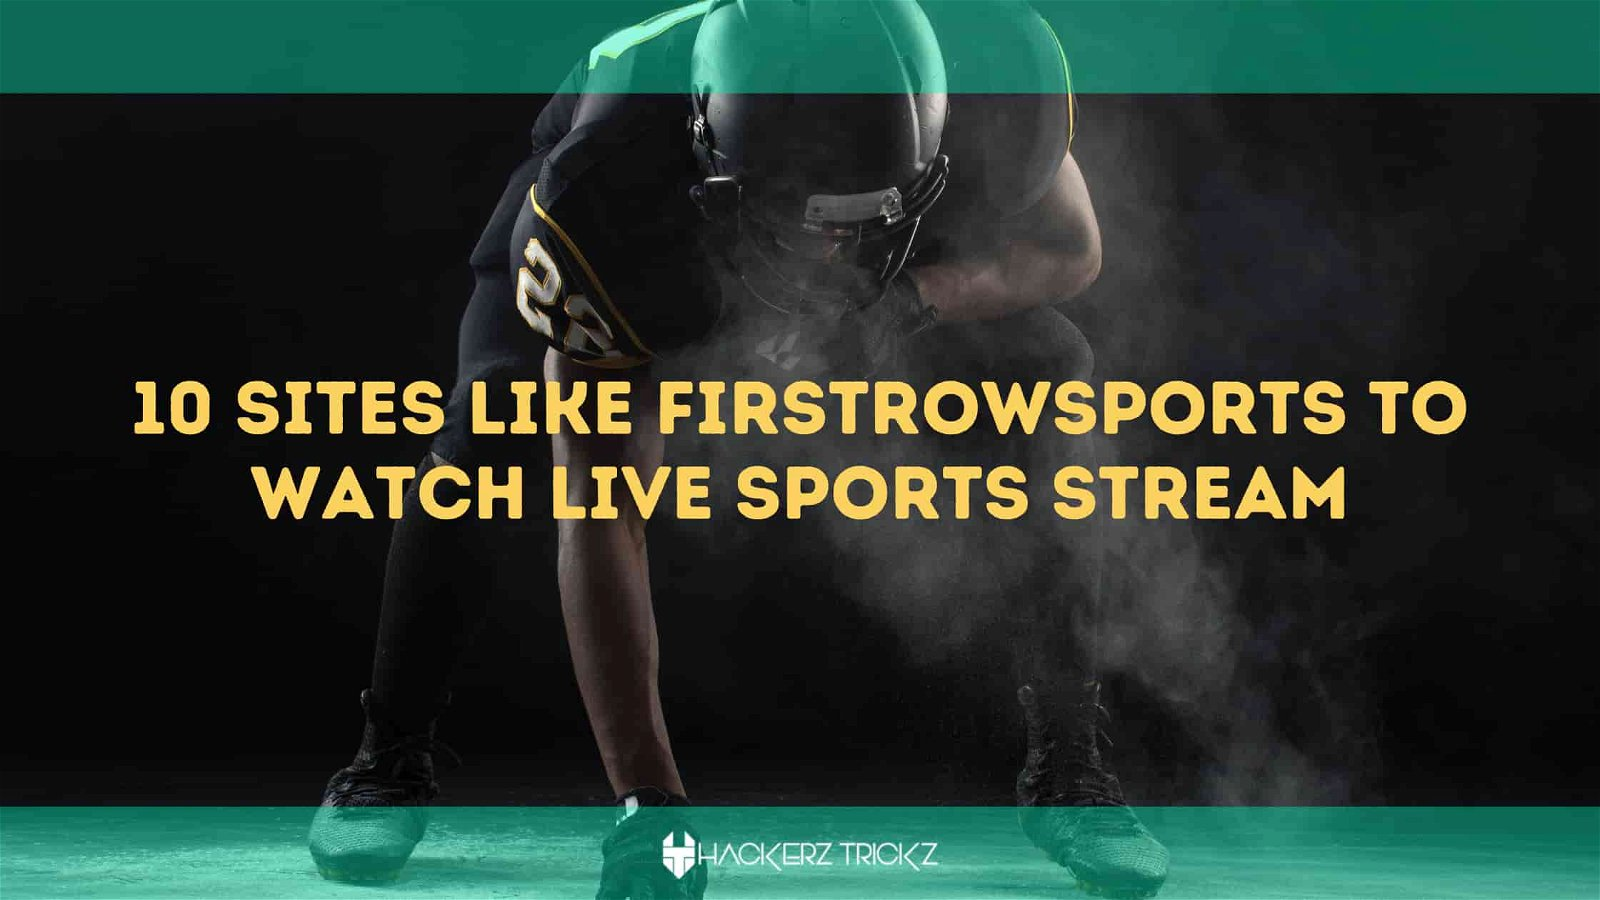 10 Sites Like FirstRowSports to Watch Live Sports Stream